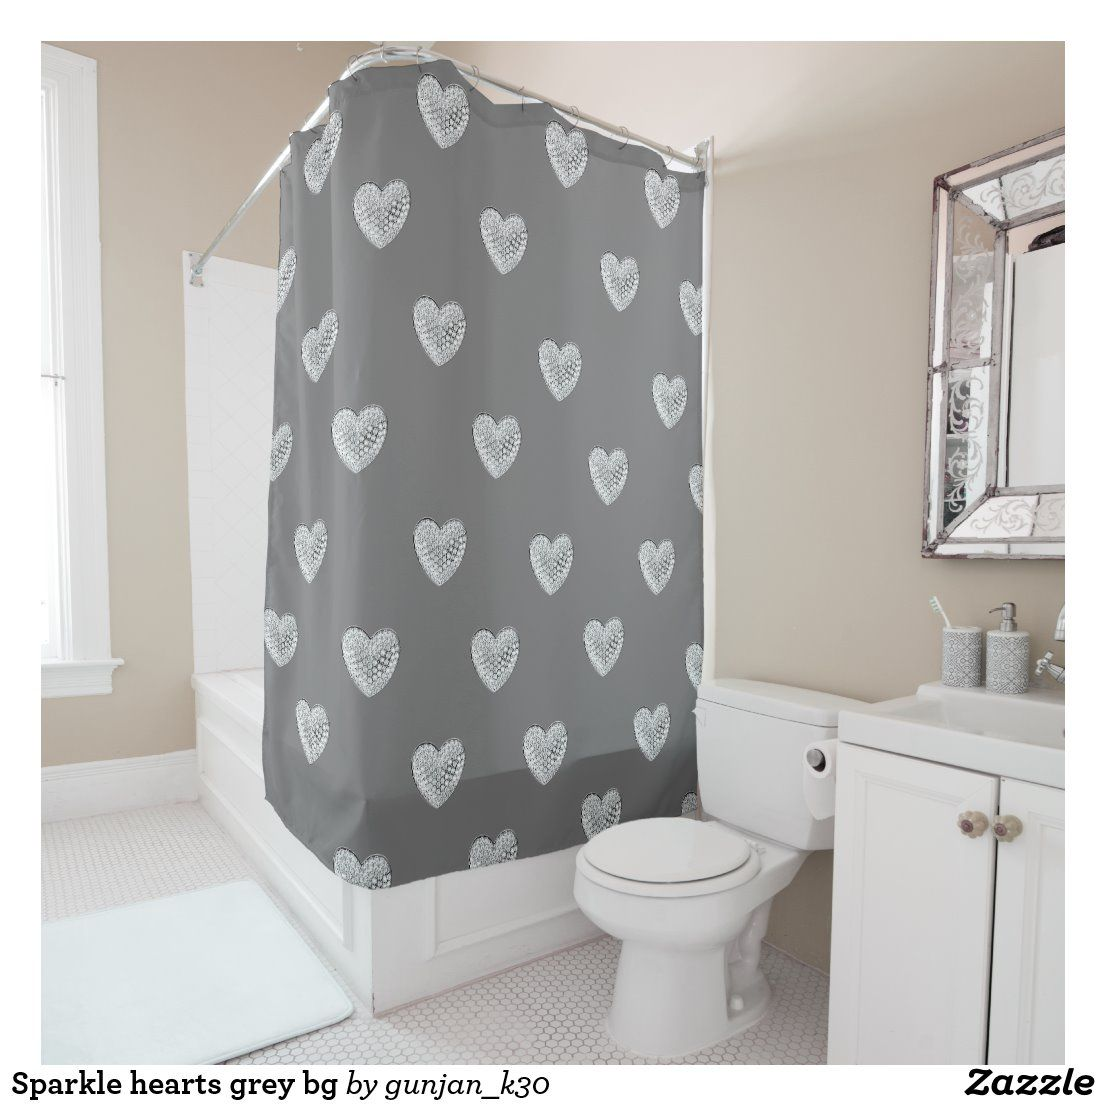 Sparkle Hearts Grey Bg Shower Curtain Zazzle Com In 2020 Custom Shower Curtains Shower Curtain Curtains